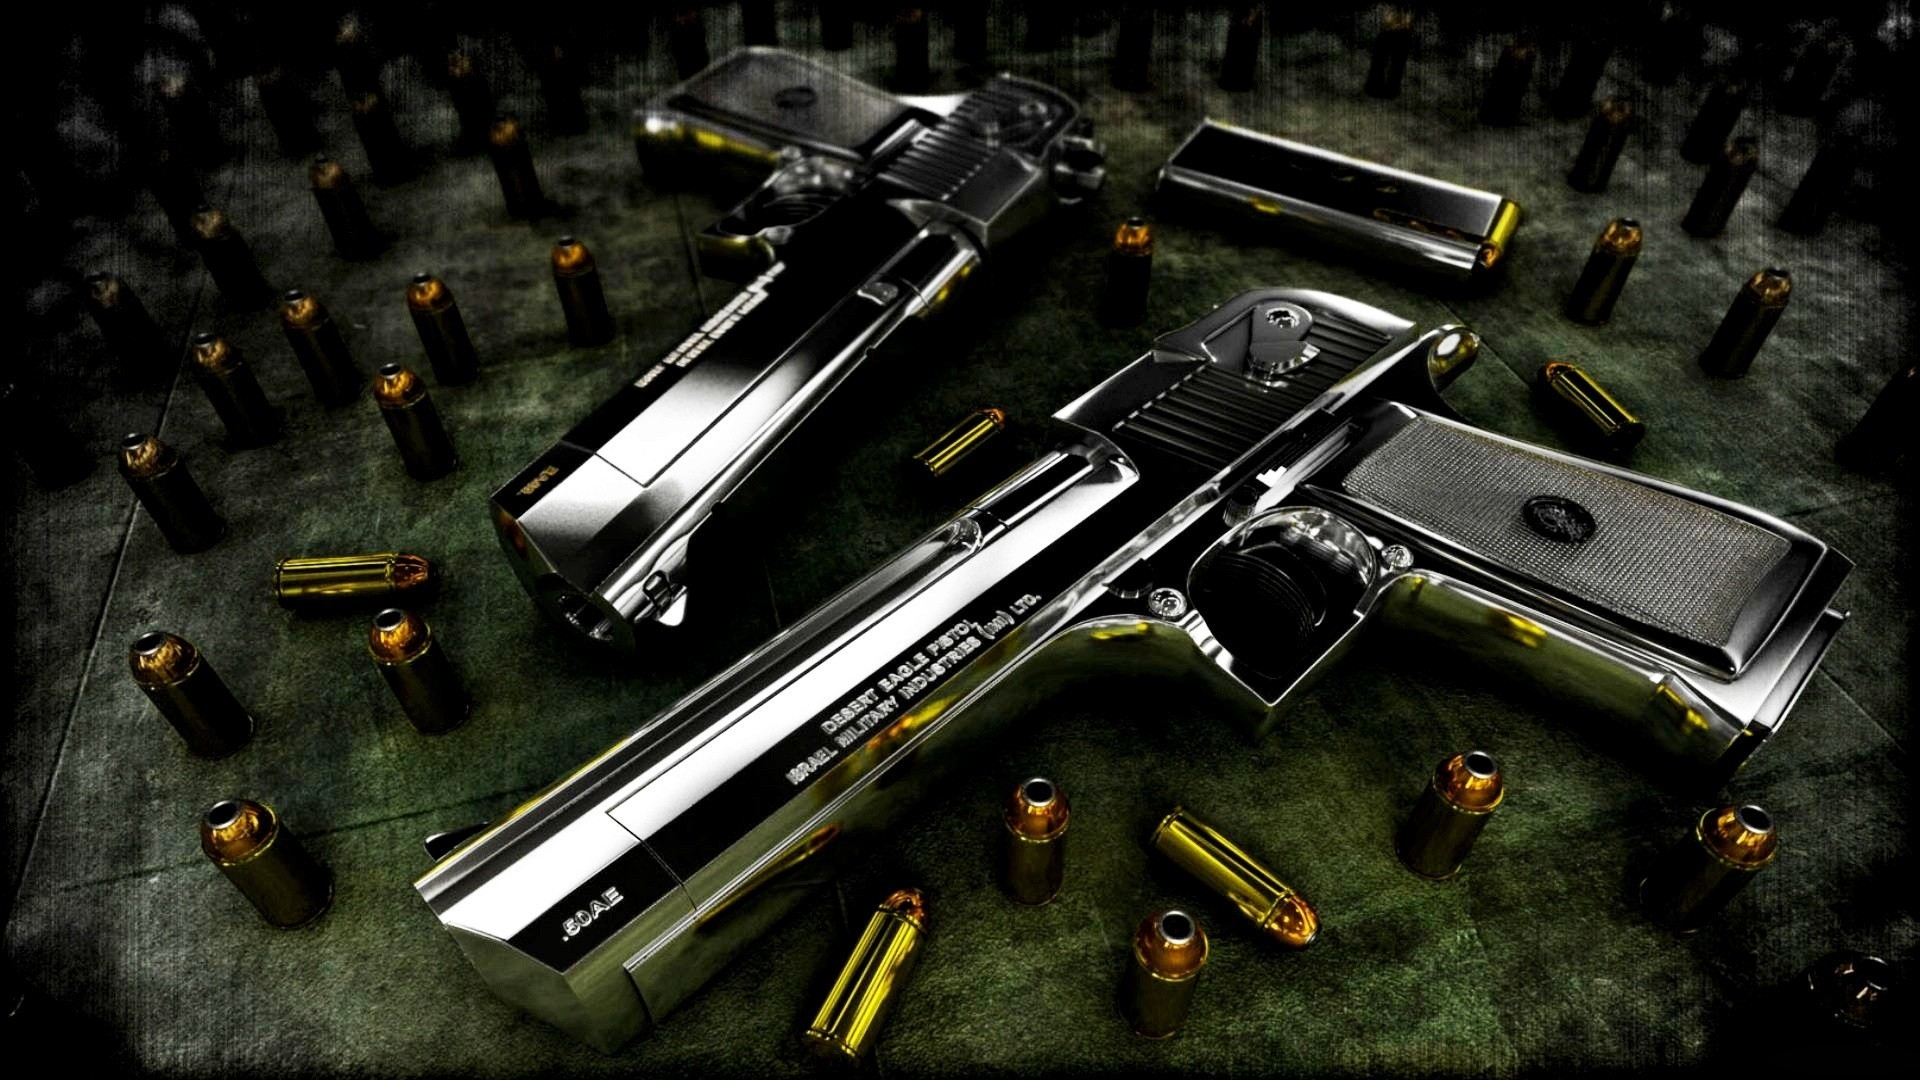 1920x1080 Duel Guns HD Wallpaper